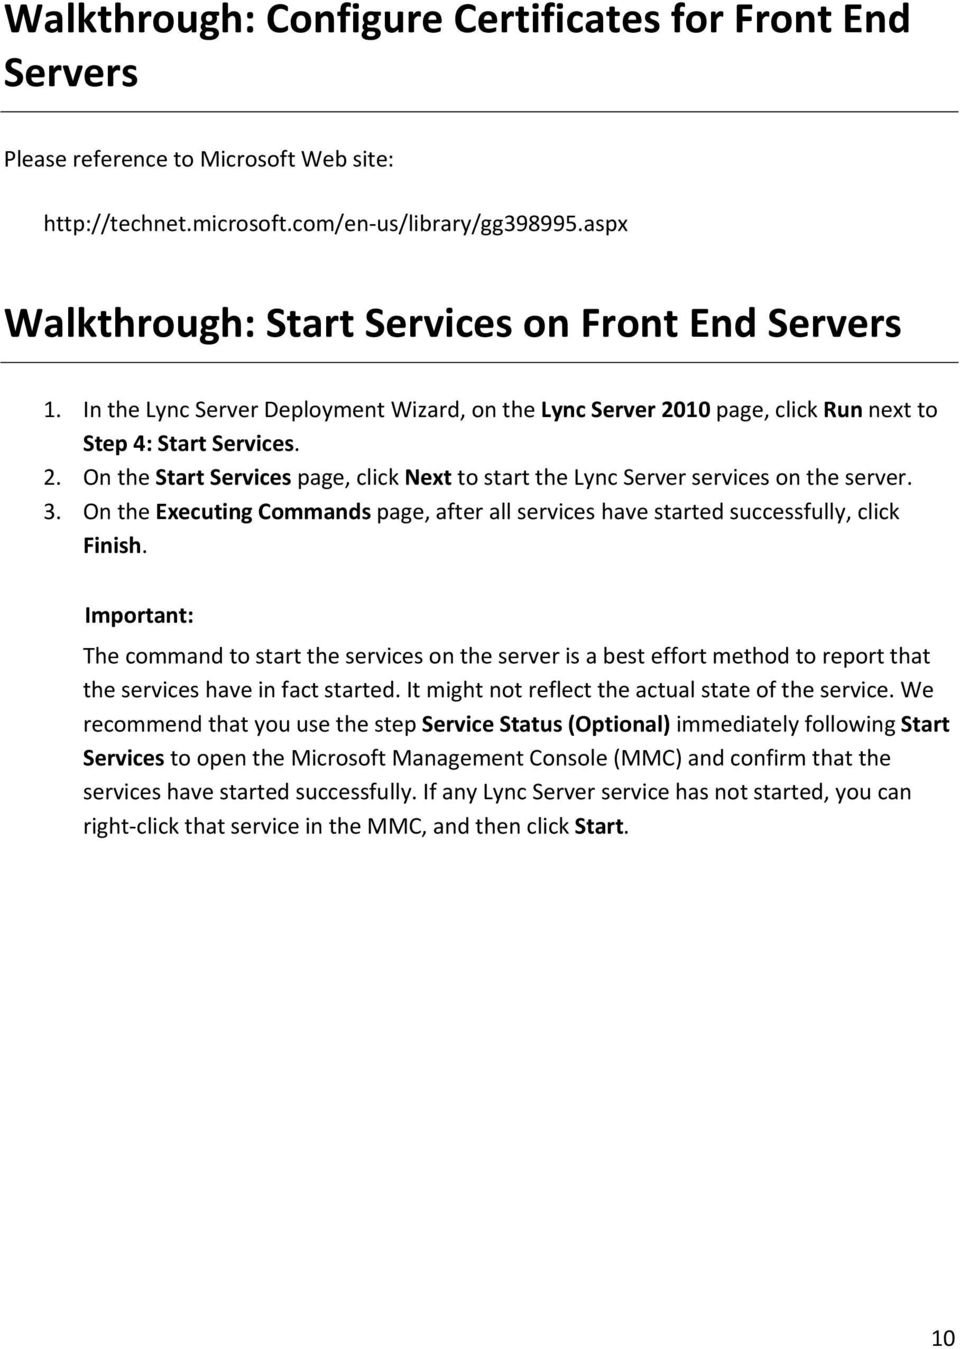 10 page, click Run next to Step 4: Start Services. 2. On the Start Services page, click Next to start the Lync Server services on the server. 3.